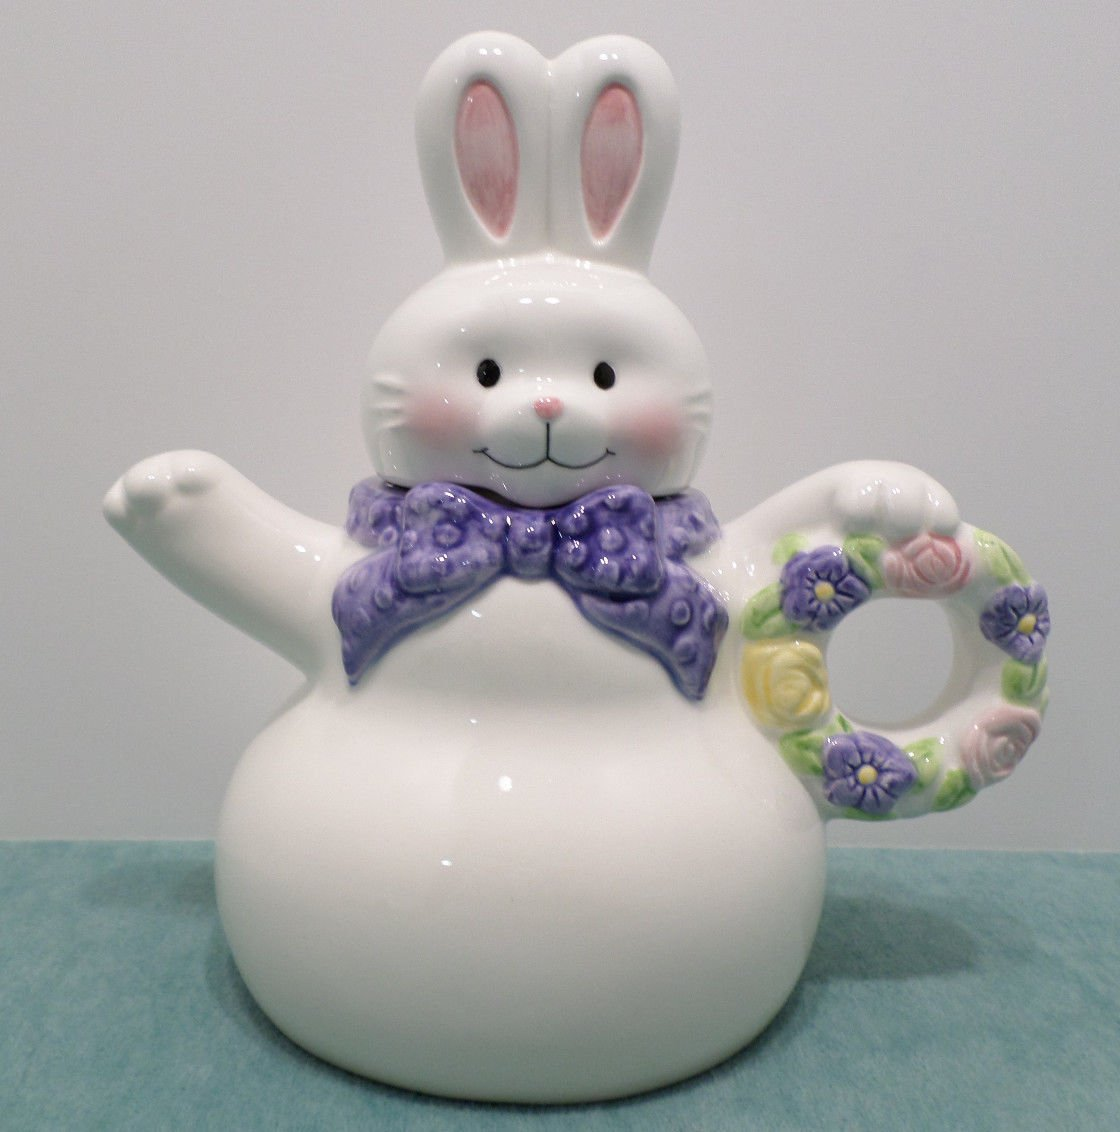 Hallmark Tea Pot Bunny Rabbit White Ceramic with Blue Ribbon